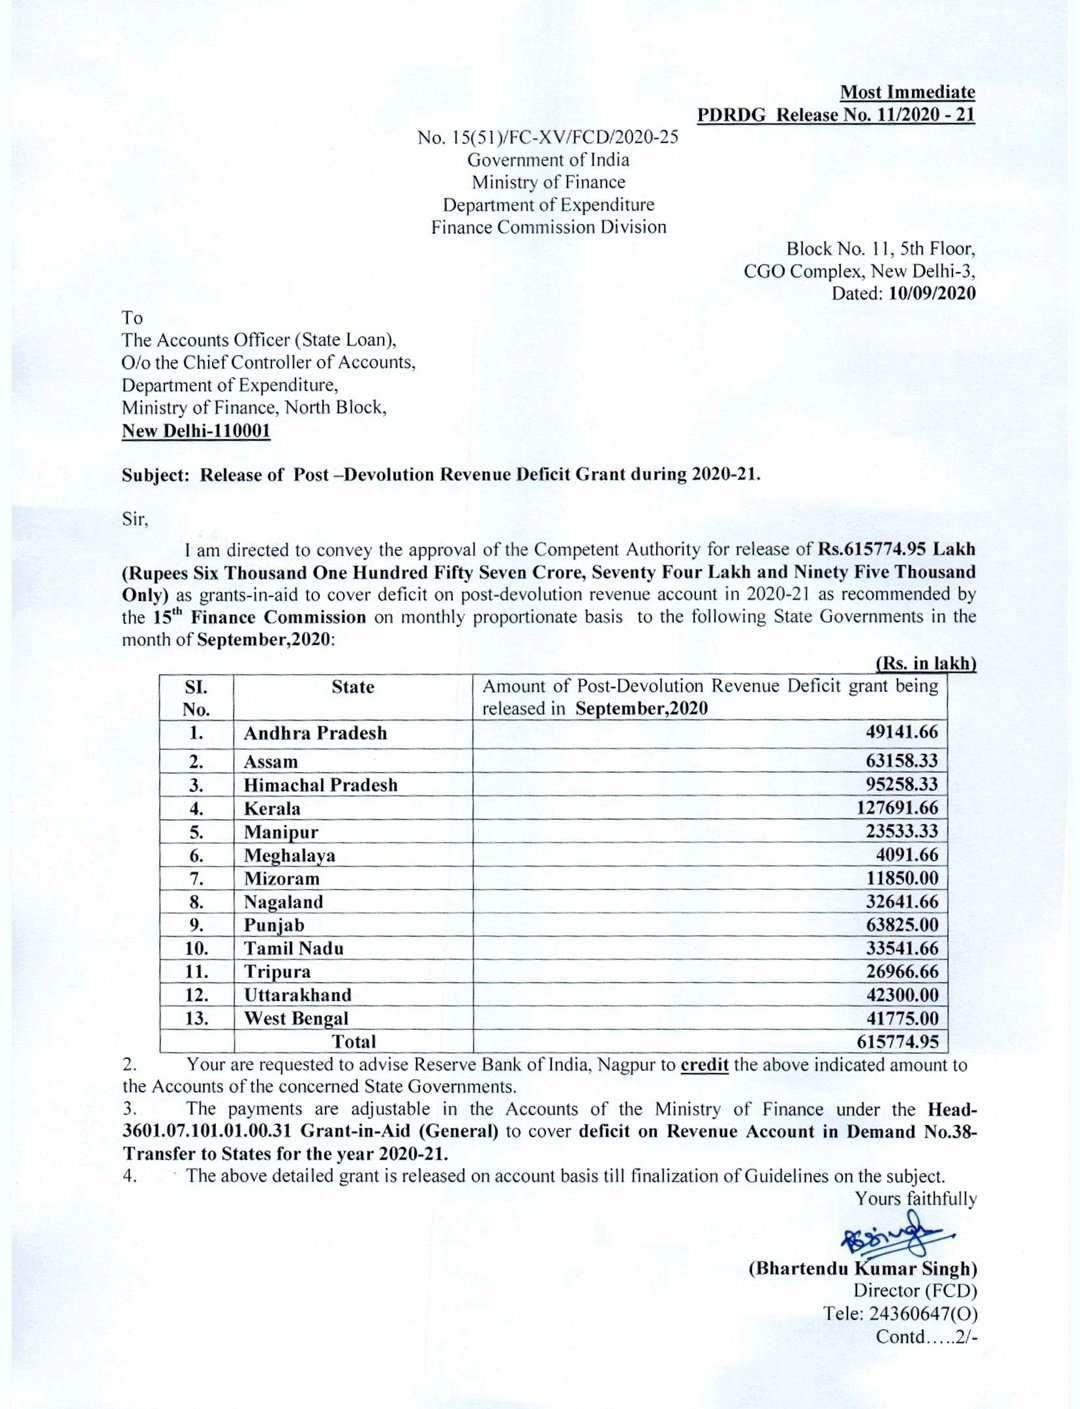 15th pay commission union government released funds 14 states government